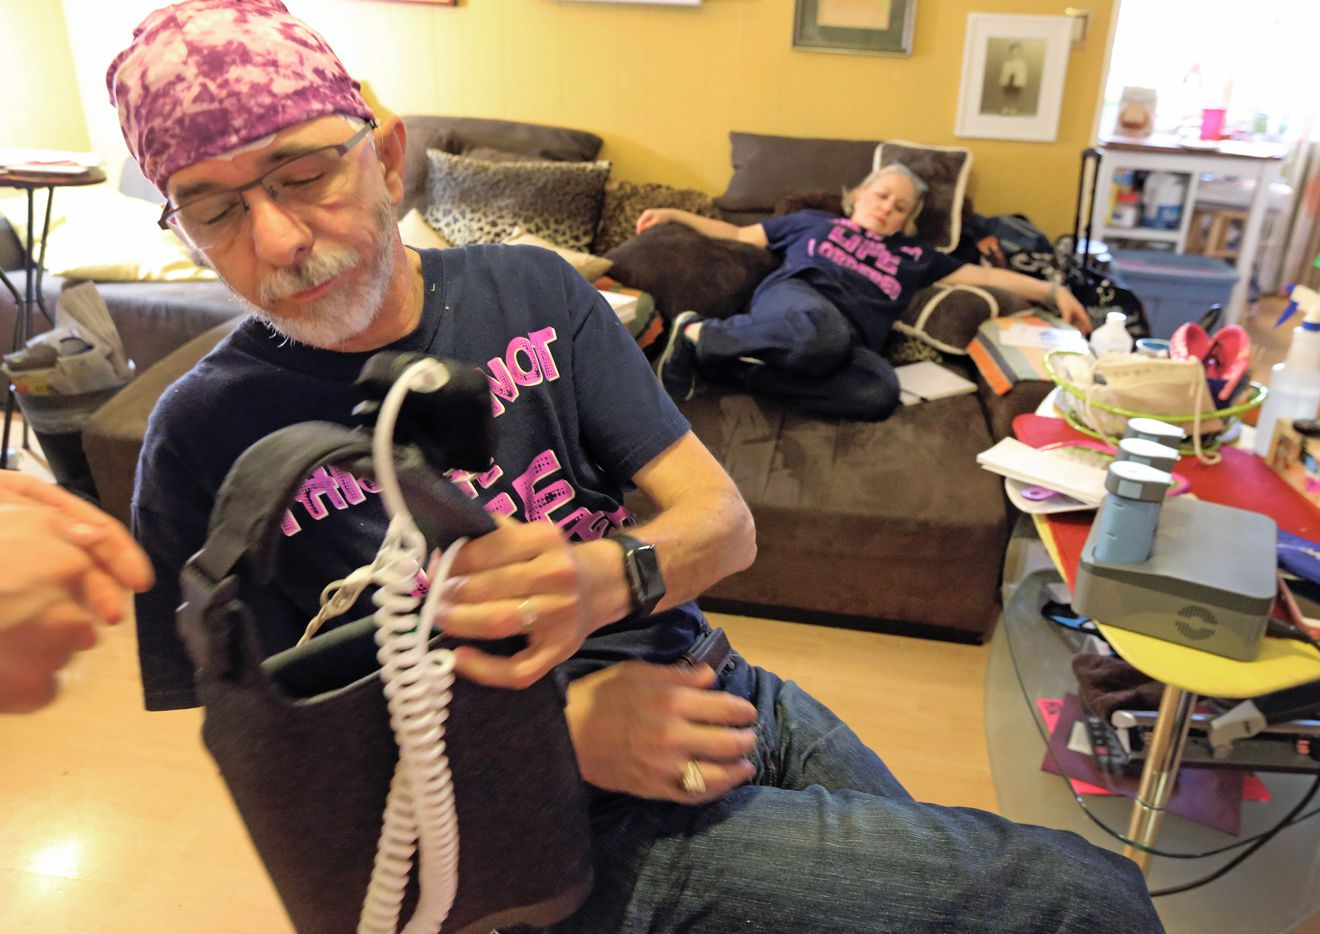 Jeffrey Weiss familiarizes himself with the Optune device he was using for treatment, as his wife Marni relaxes for a moment at their home in Dallas.